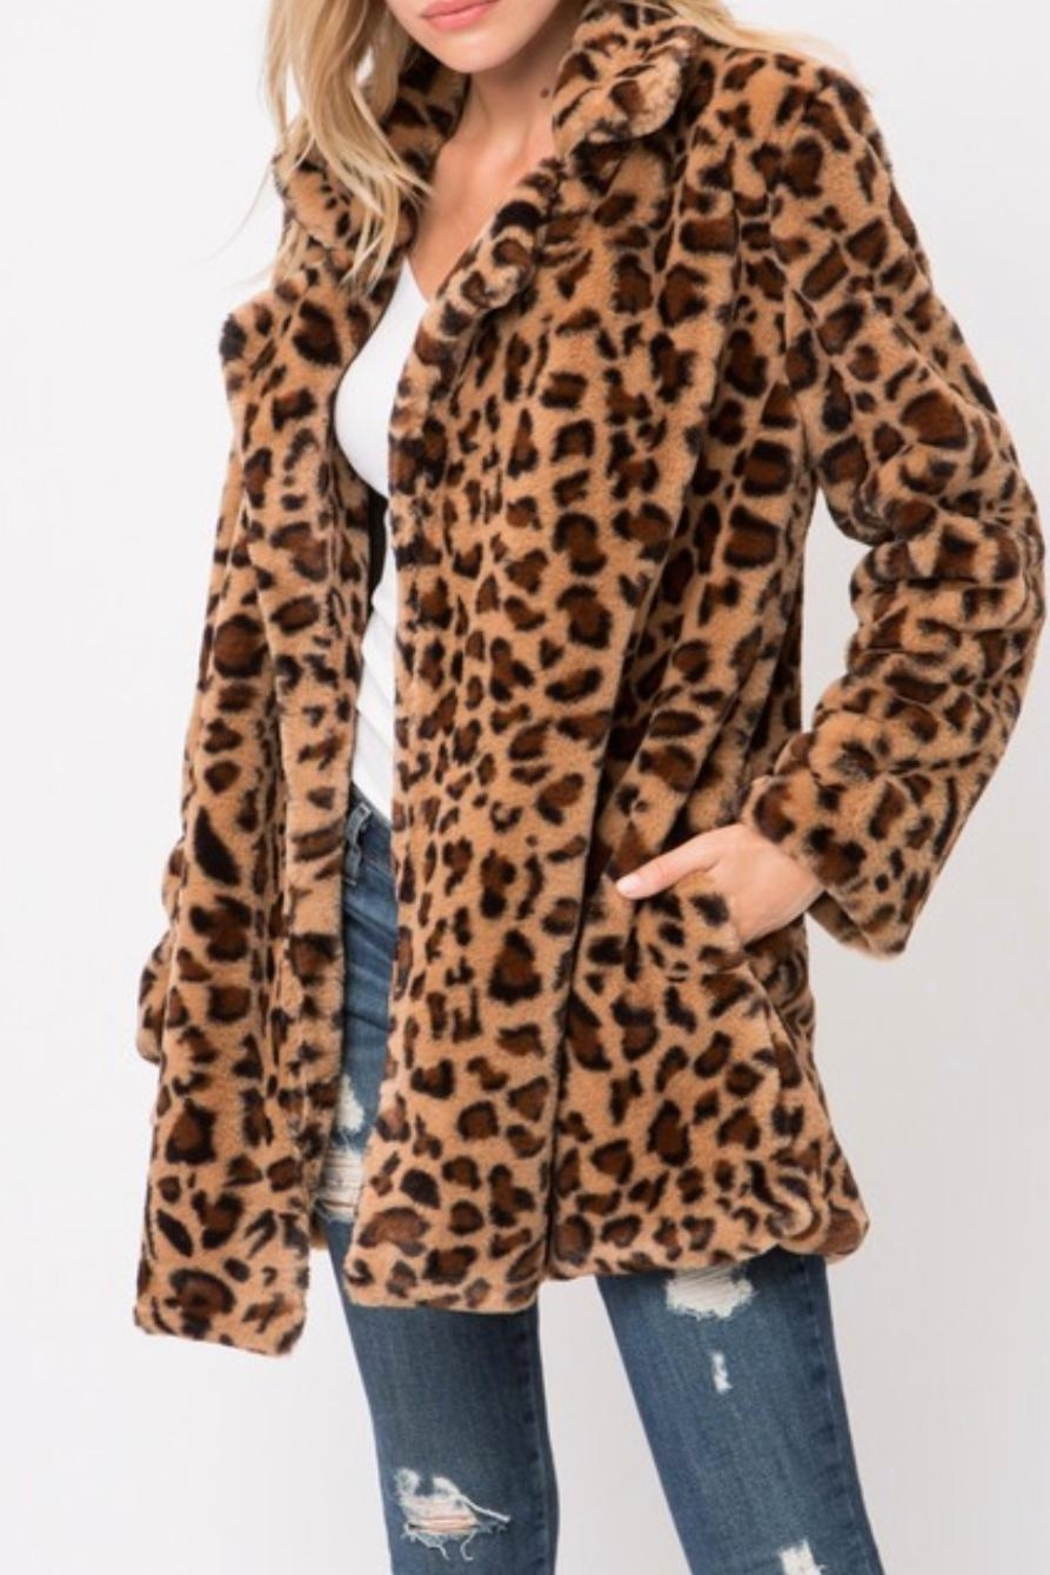 88470e812cb48e Love Tree Leopard Print Jacket from Wisconsin by Apricot Lane ...